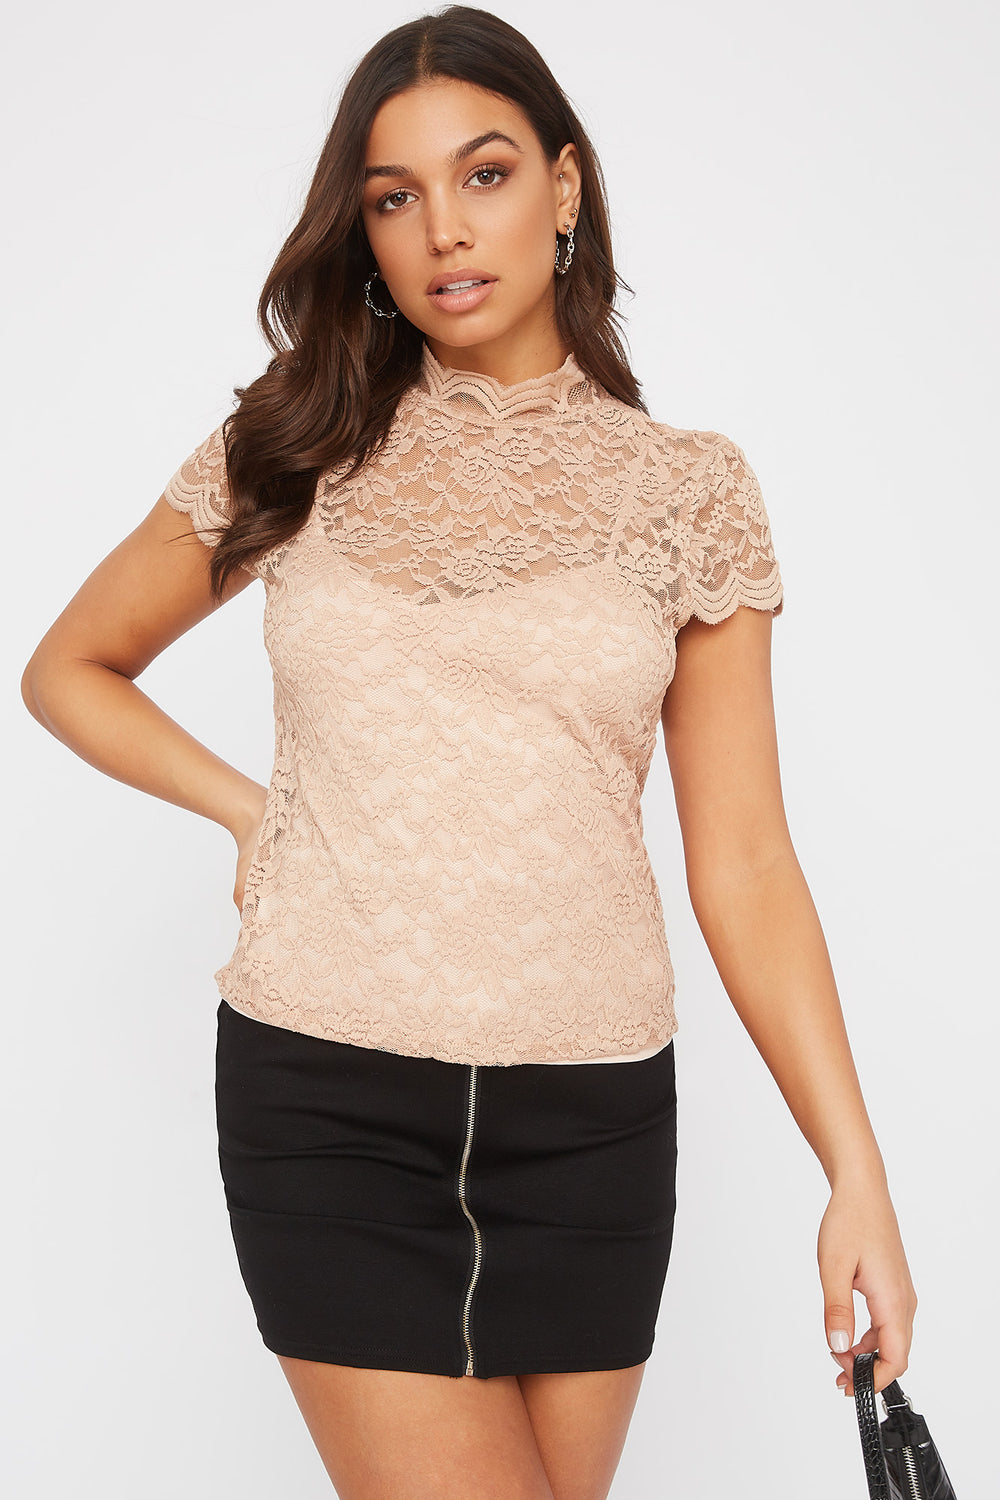 Lace Scallop Short Sleeve and Camisole Taupe